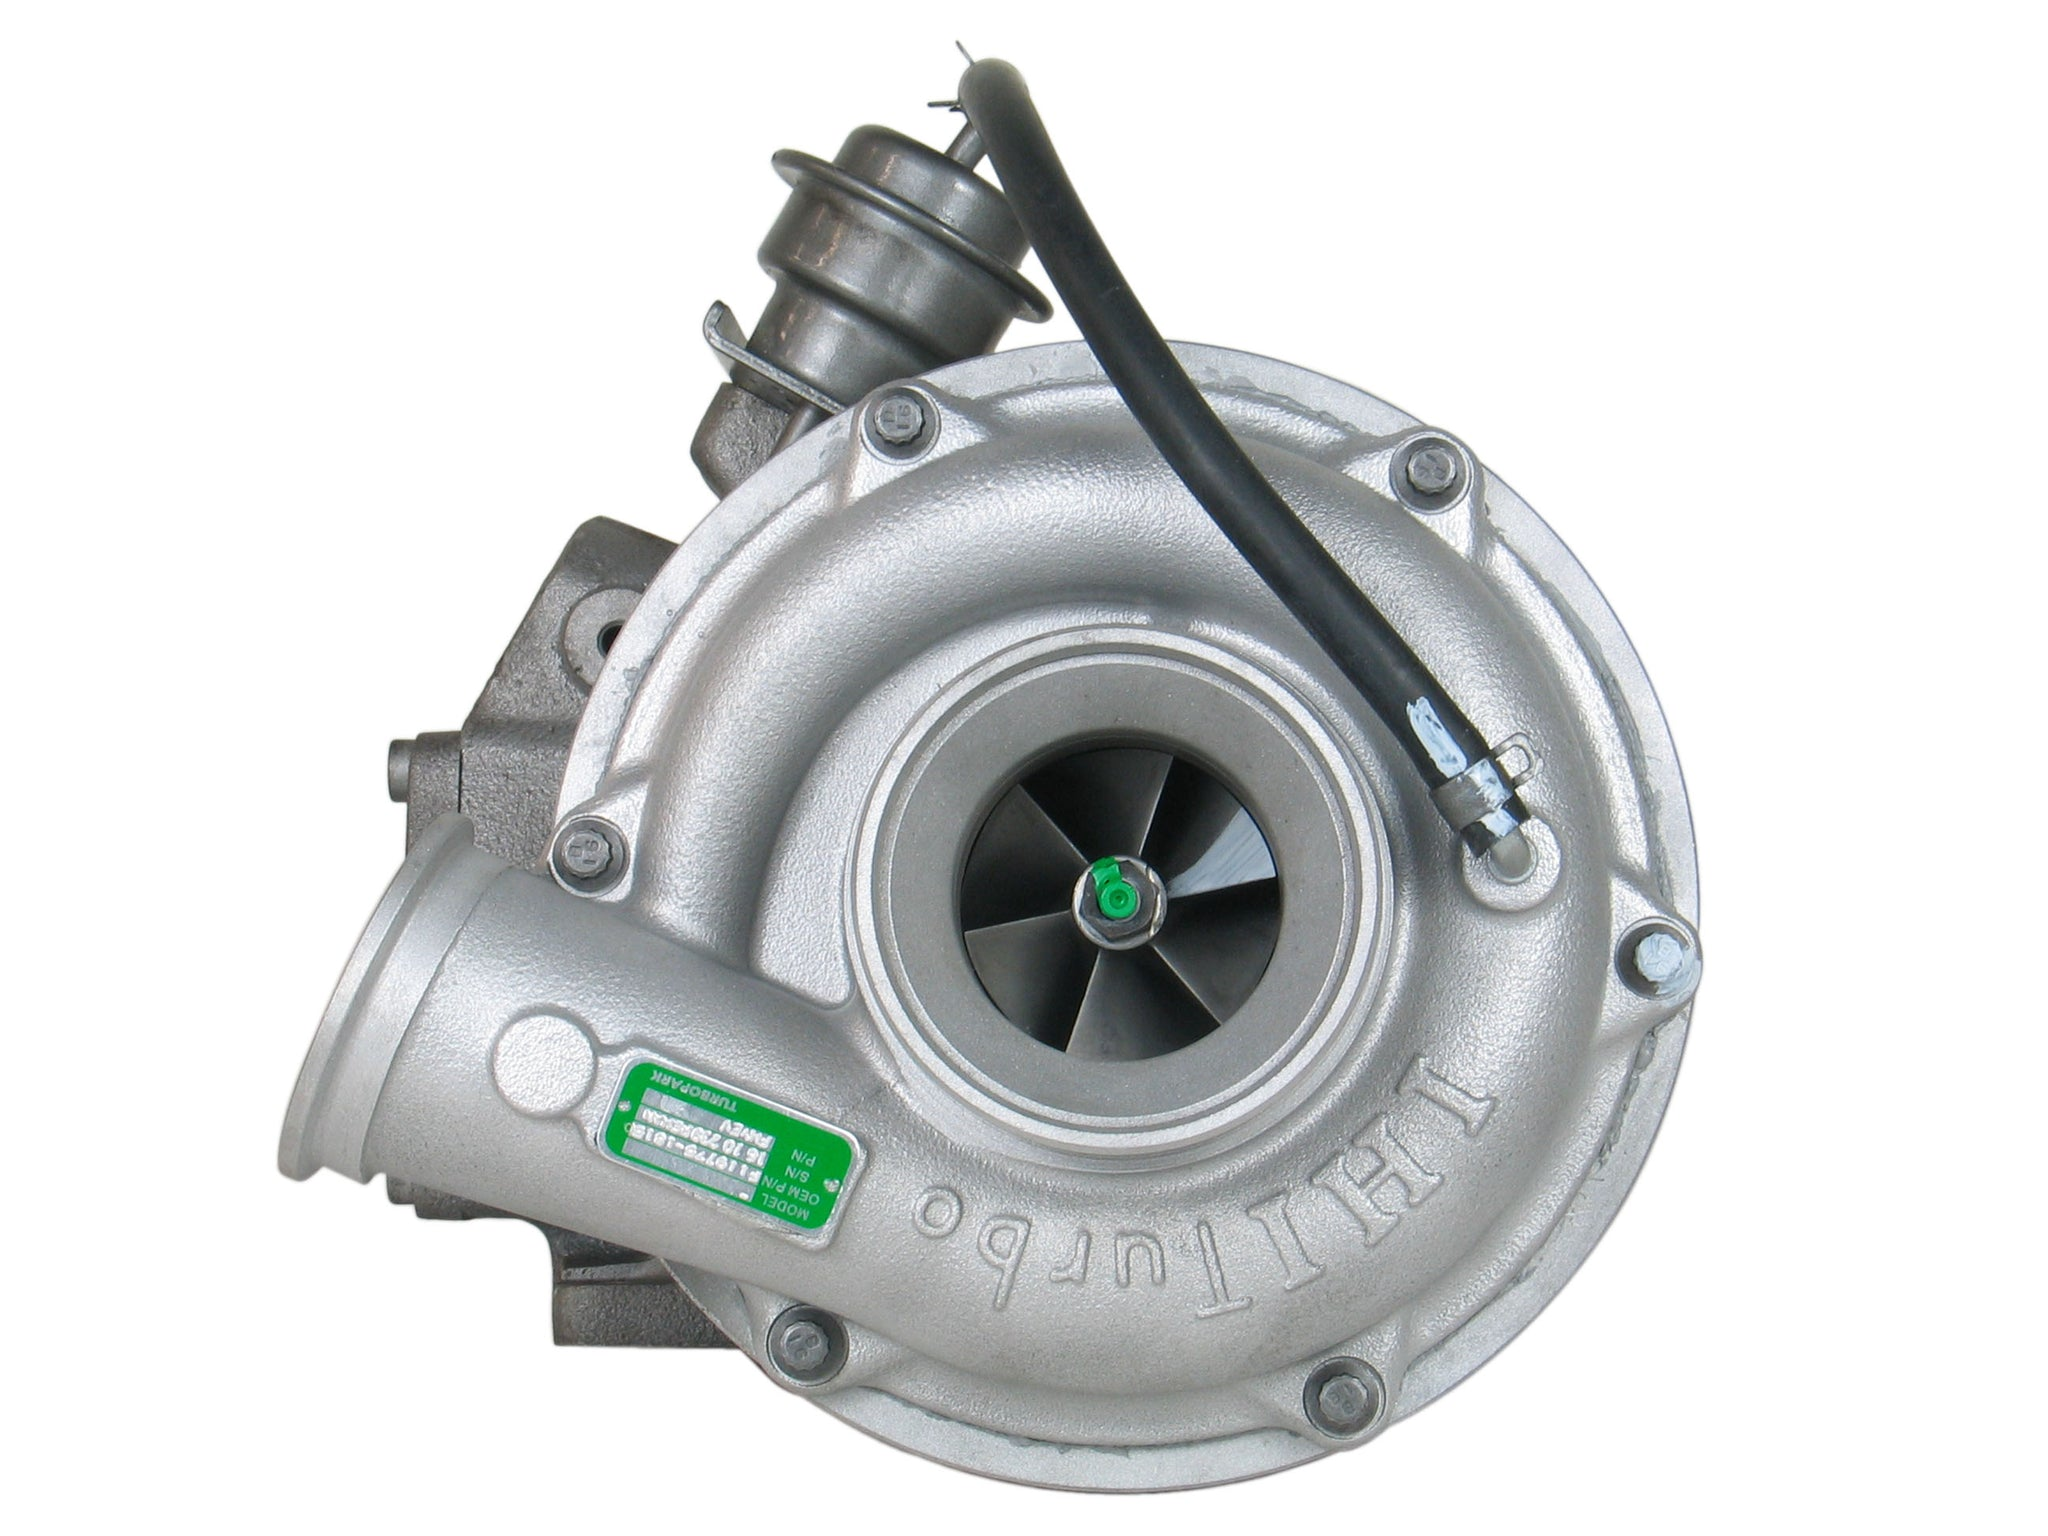 Yanmar Sailboat Marine 6LPA-STZP2 Engine V-720086 MYEV RHE62W Turbocharger